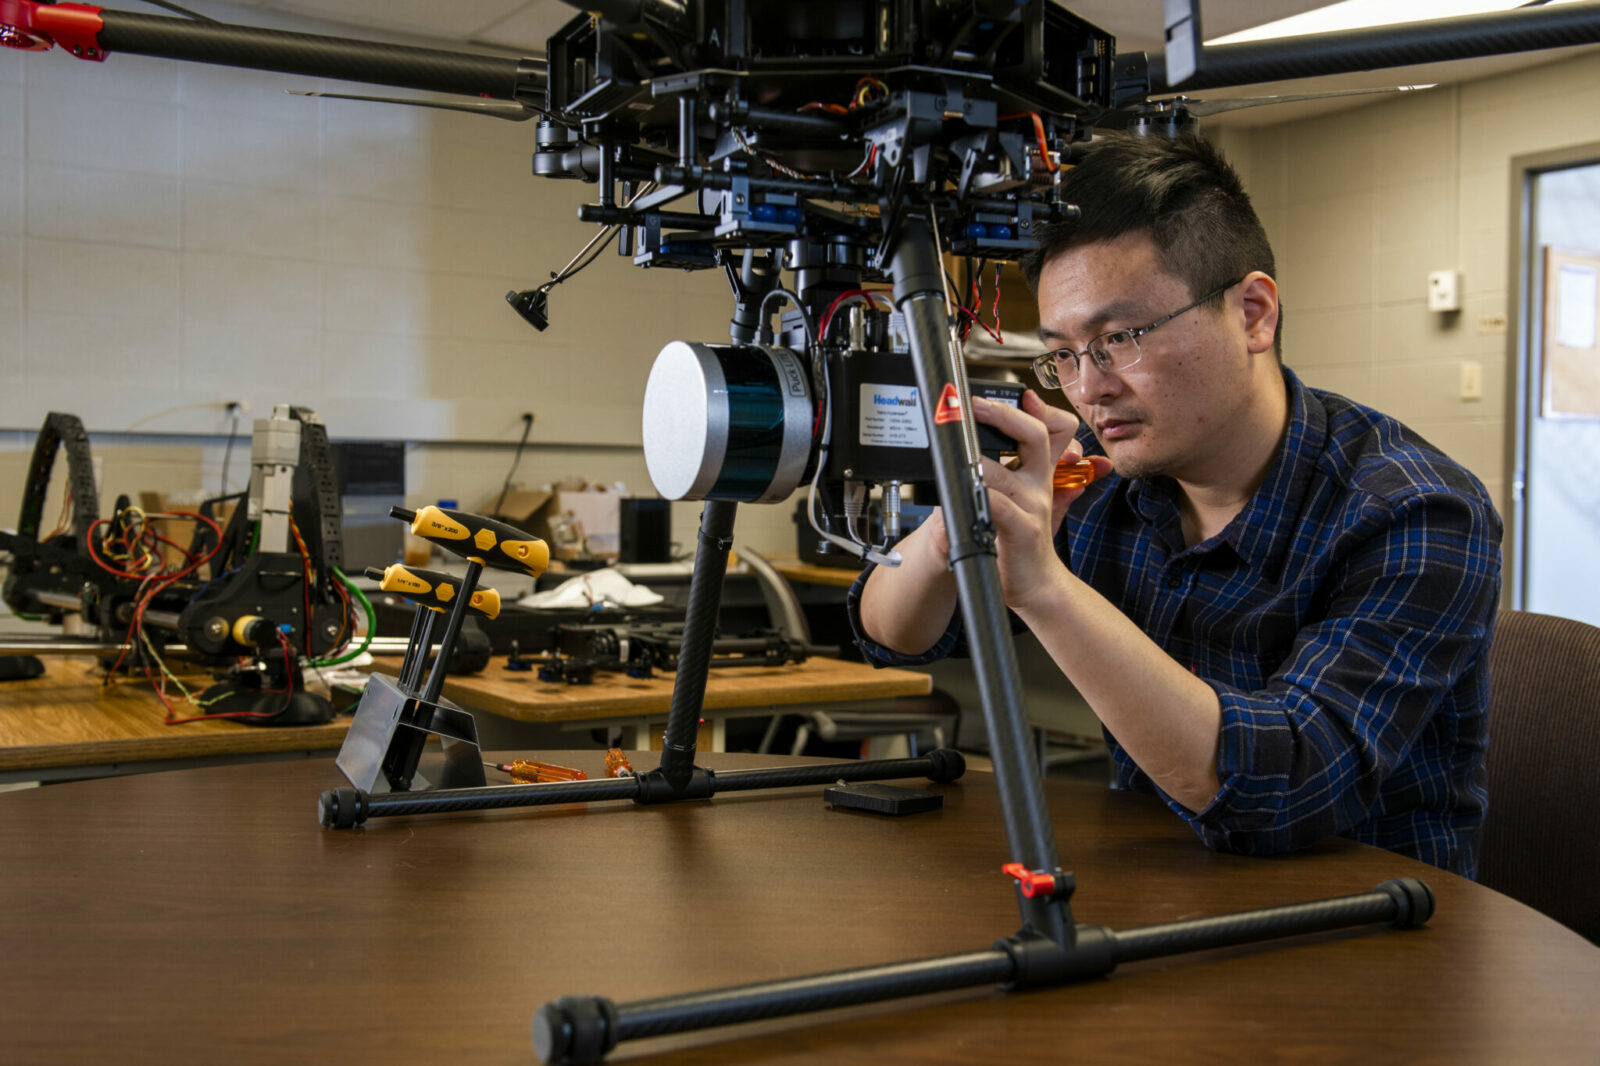 Photo of Xinzhe Yuan working on drone in lab